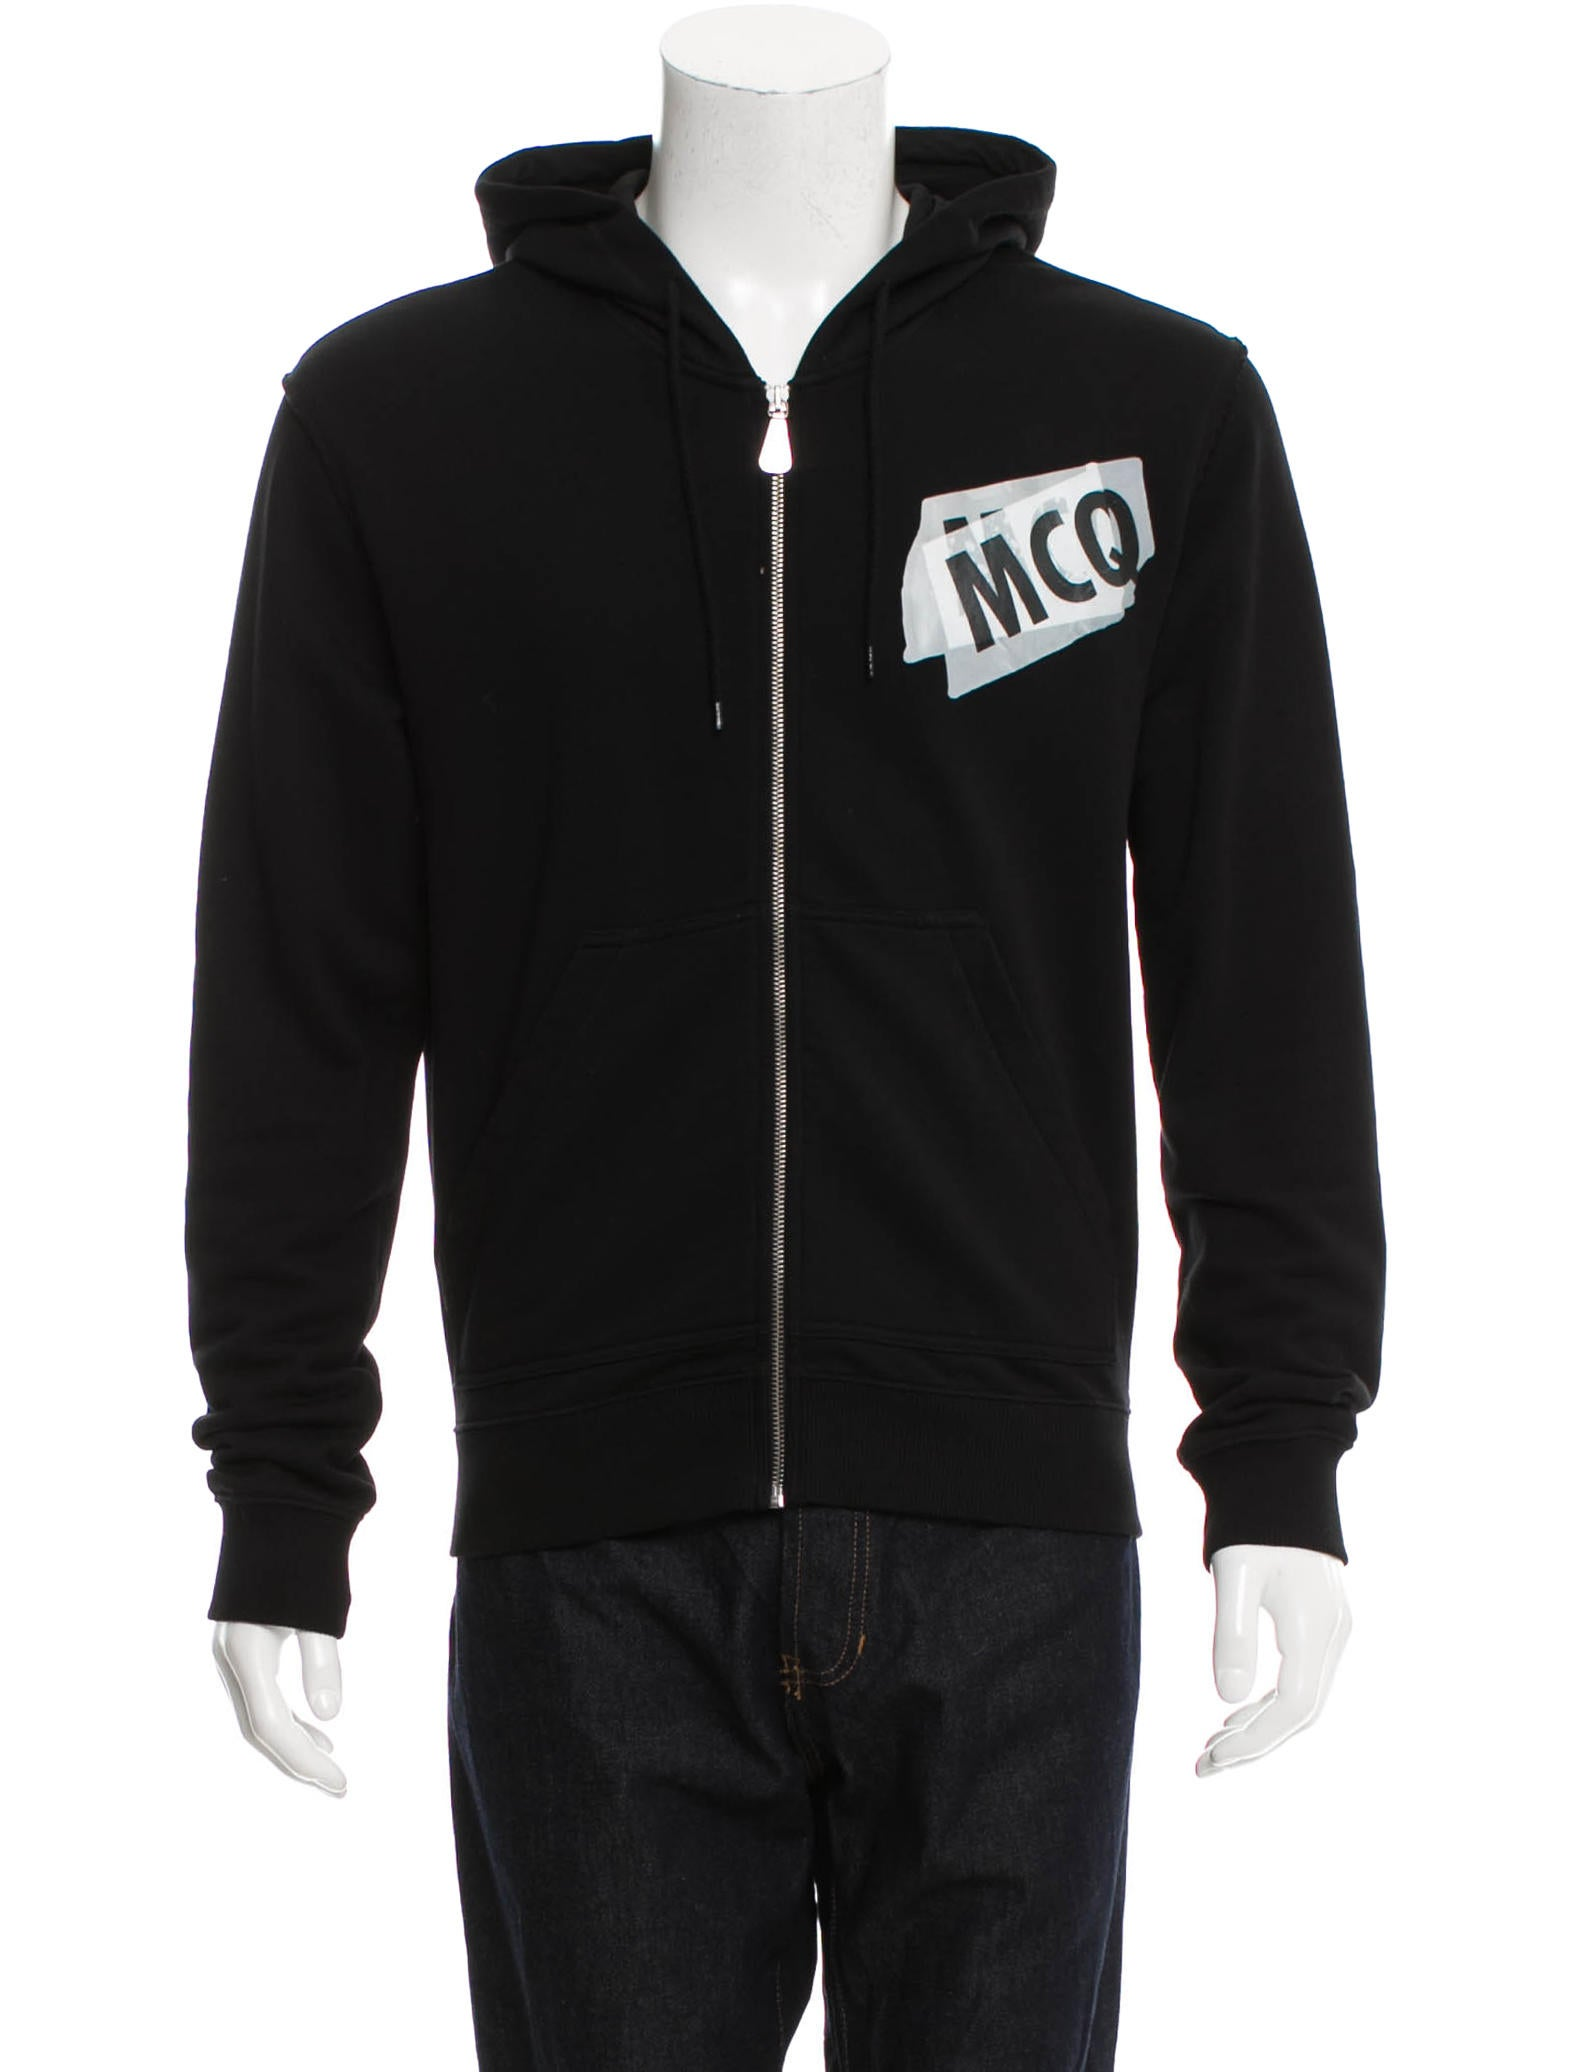 mcq by alexander mcqueen logo zip hoodie clothing wmq24032 the realreal. Black Bedroom Furniture Sets. Home Design Ideas